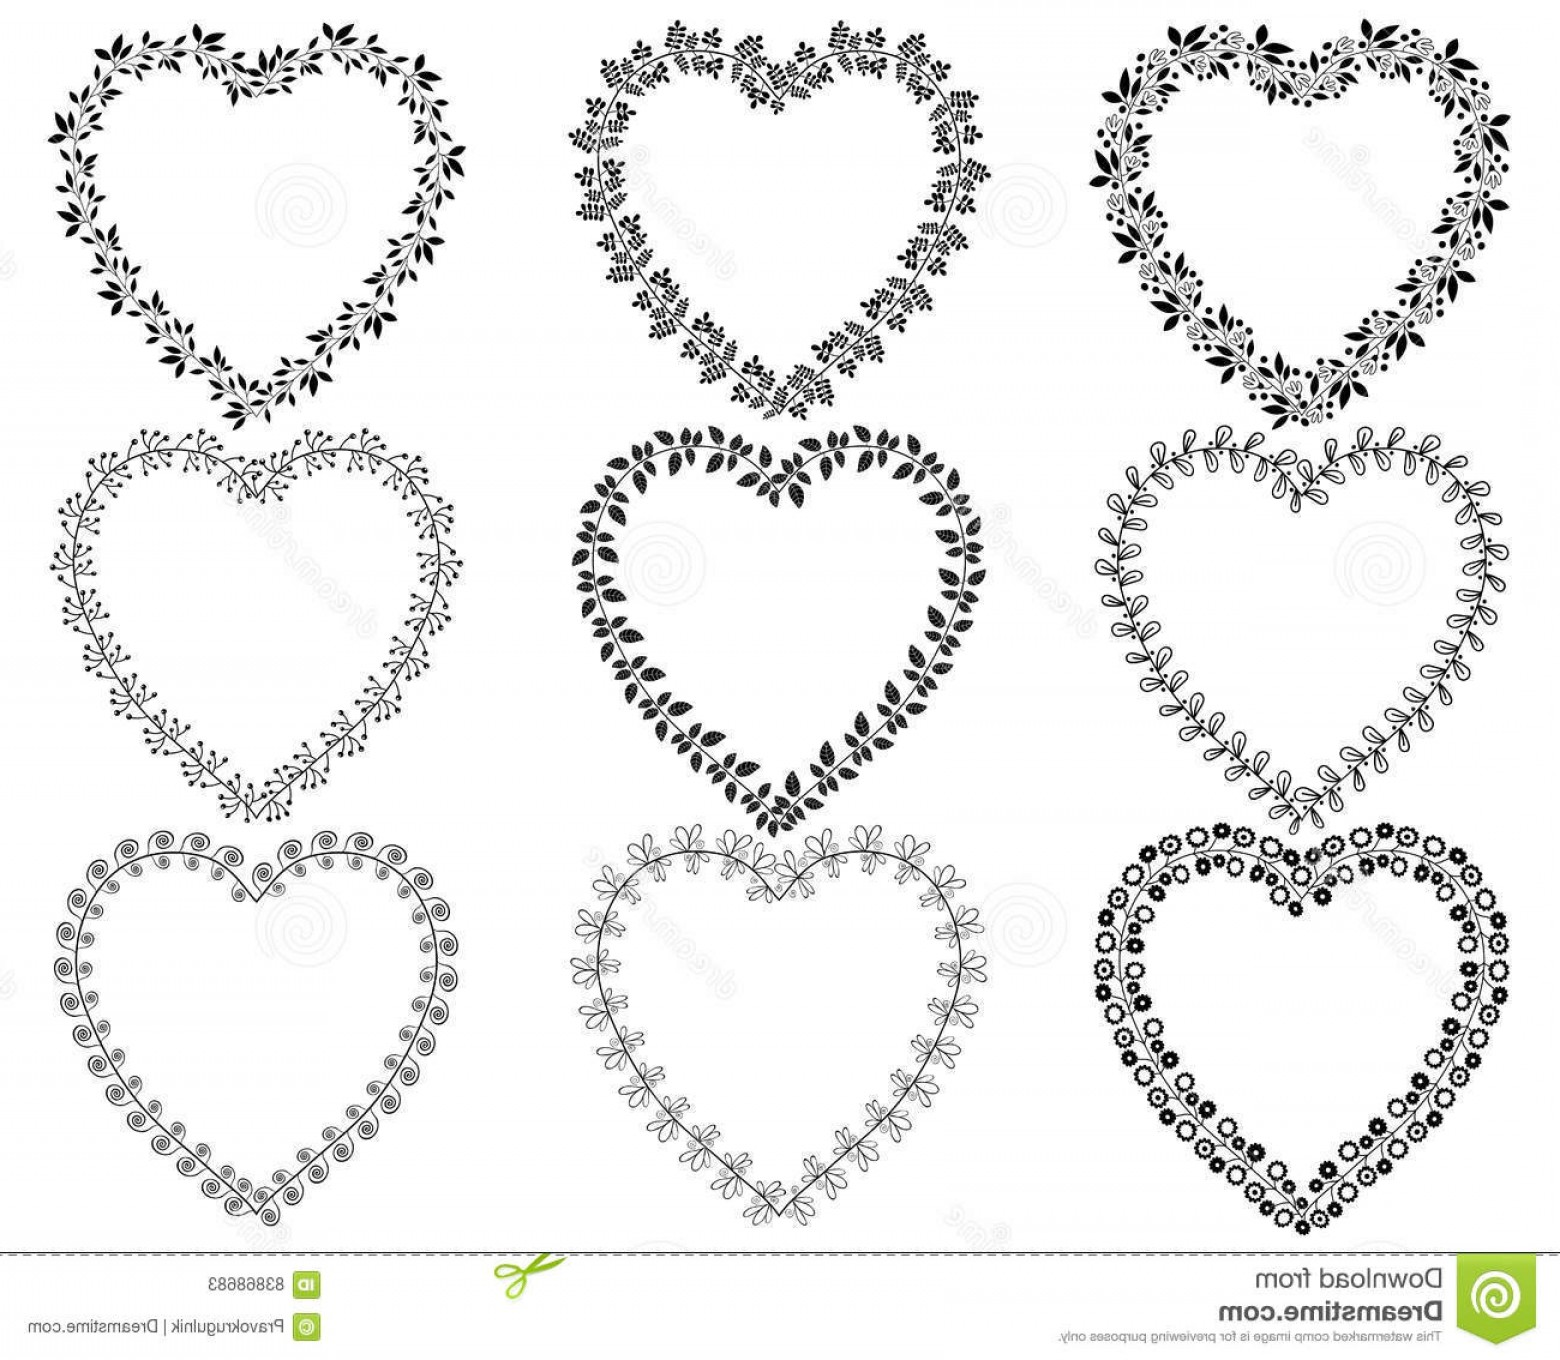 Rustic Heart Vectors: Stock Illustration Heart Shaped Wreath Borders Vector Set Floral Valentine S Day Invitations Other Designs Black Color Copy Space Image